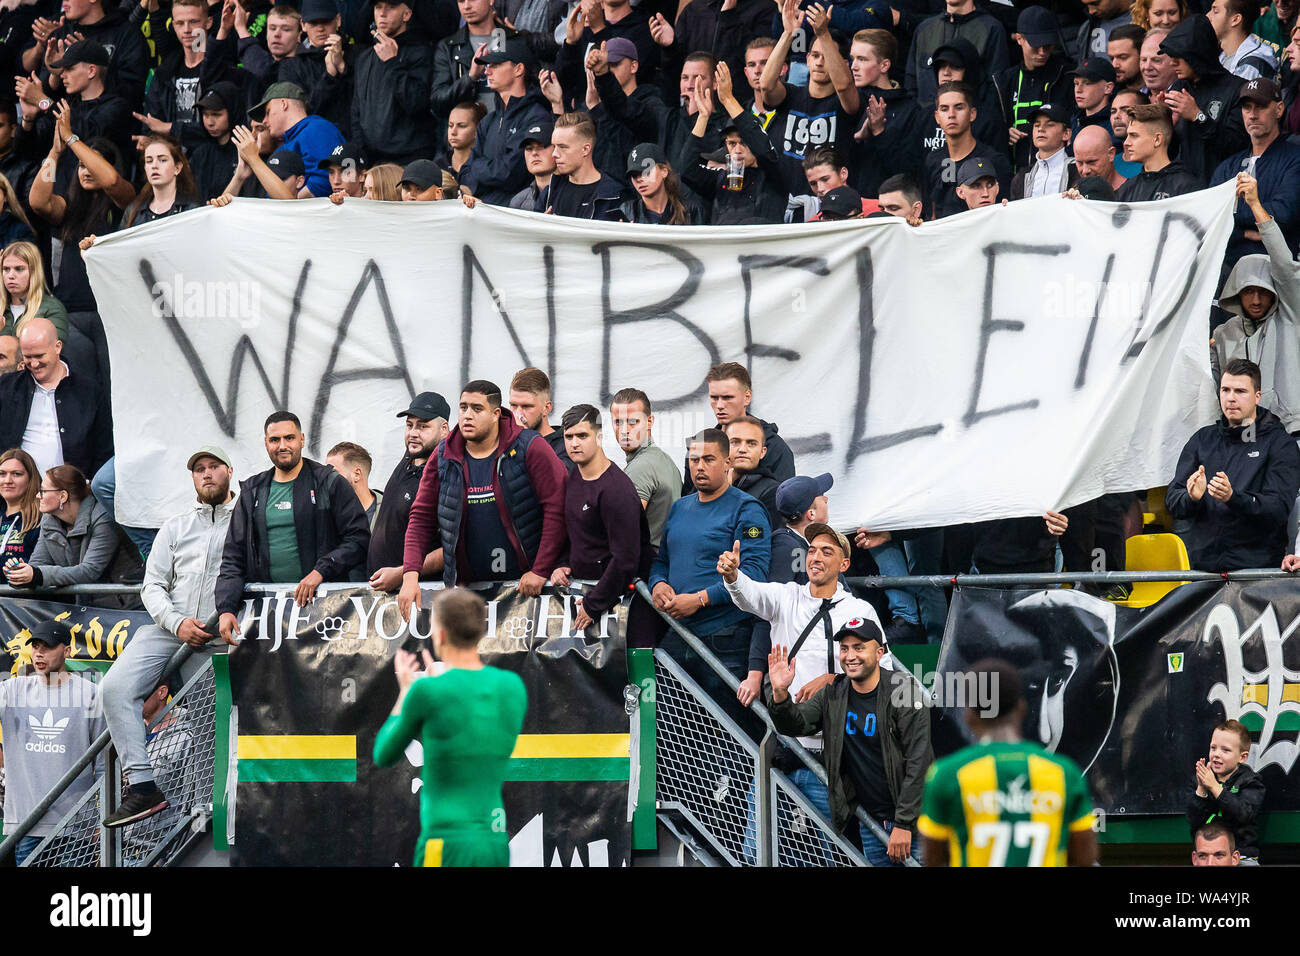 Den Haag Netherlands 17th Aug 2019 Cars Jeans Stadion Season 2019 2020 Football Dutch Eredivisie Ado Den Haag Sparta Final Result 1 2 Ado Fans Are Disappointed Credit Pro Shots Alamy Live News Stock Photo Alamy